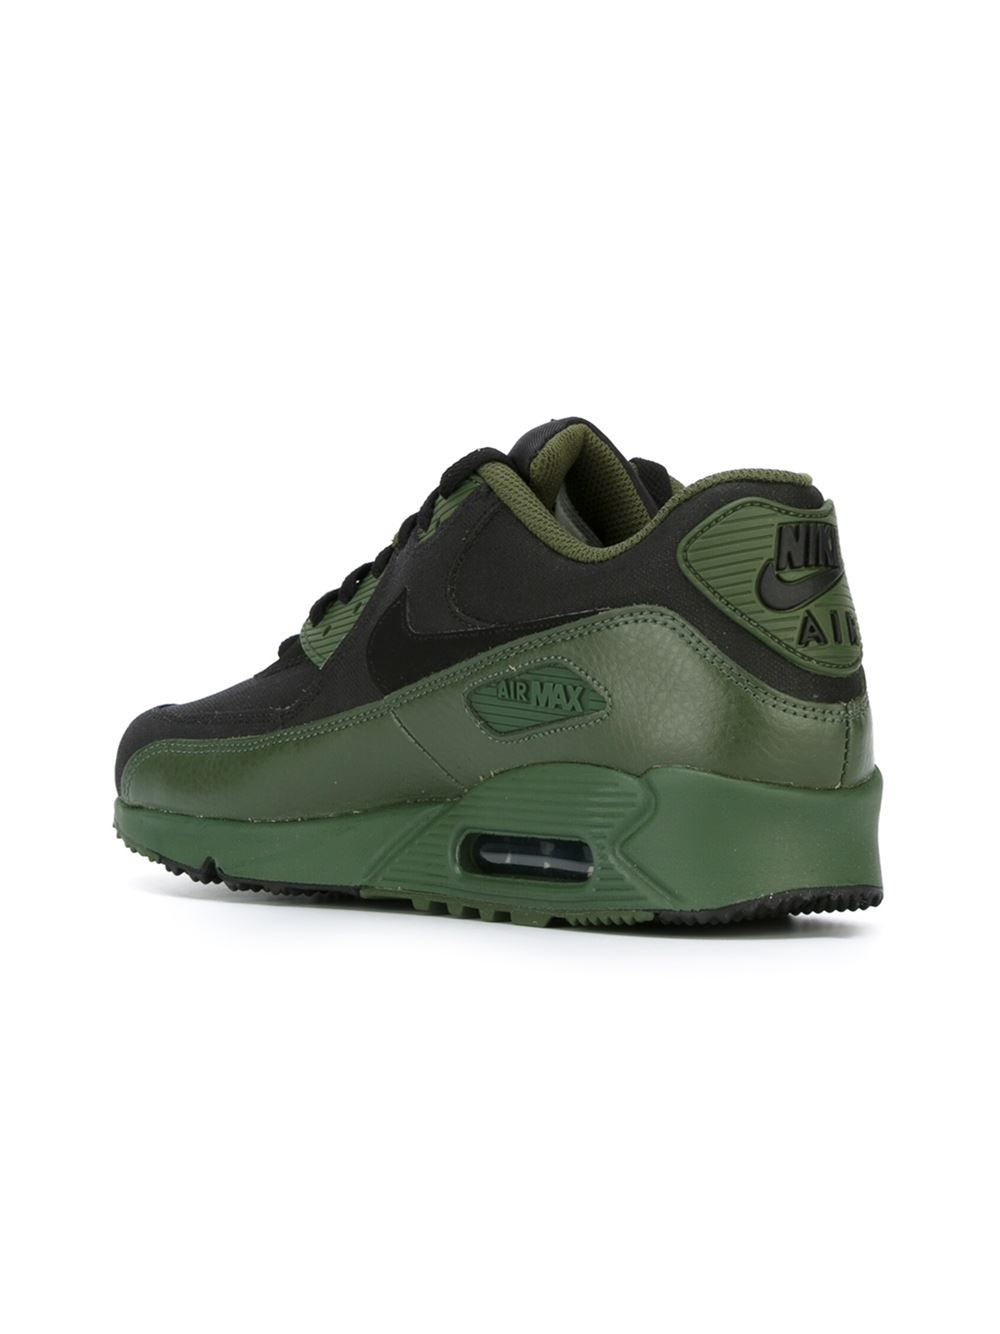 nike air max 90 winter premium low top sneakers in green. Black Bedroom Furniture Sets. Home Design Ideas